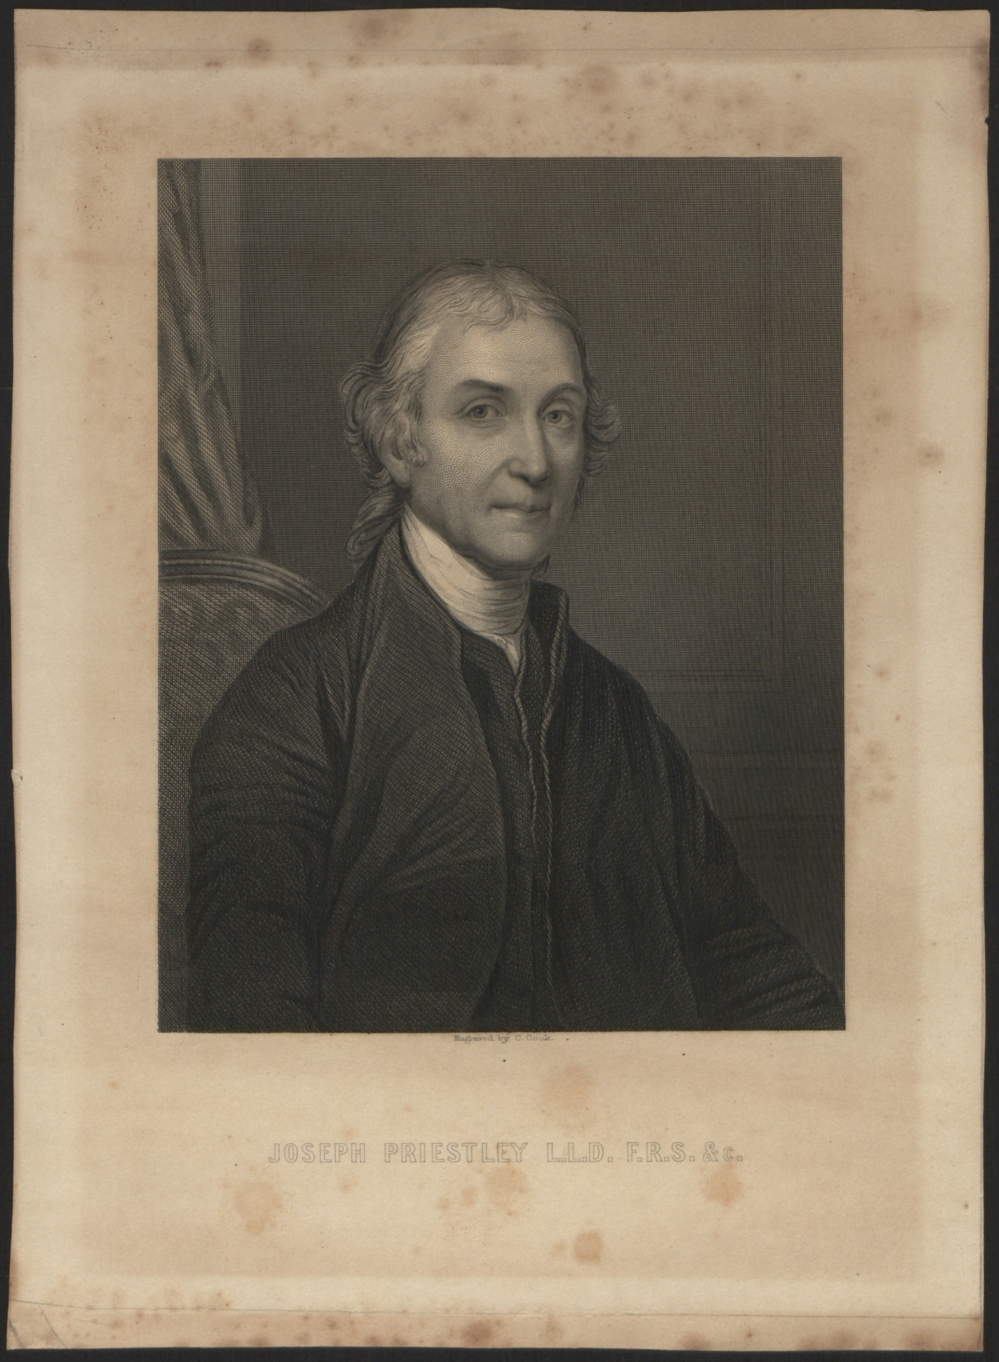 preview image for Print (Engraving) of Joseph Priestley, Engraved by C. Cook, 19th Century